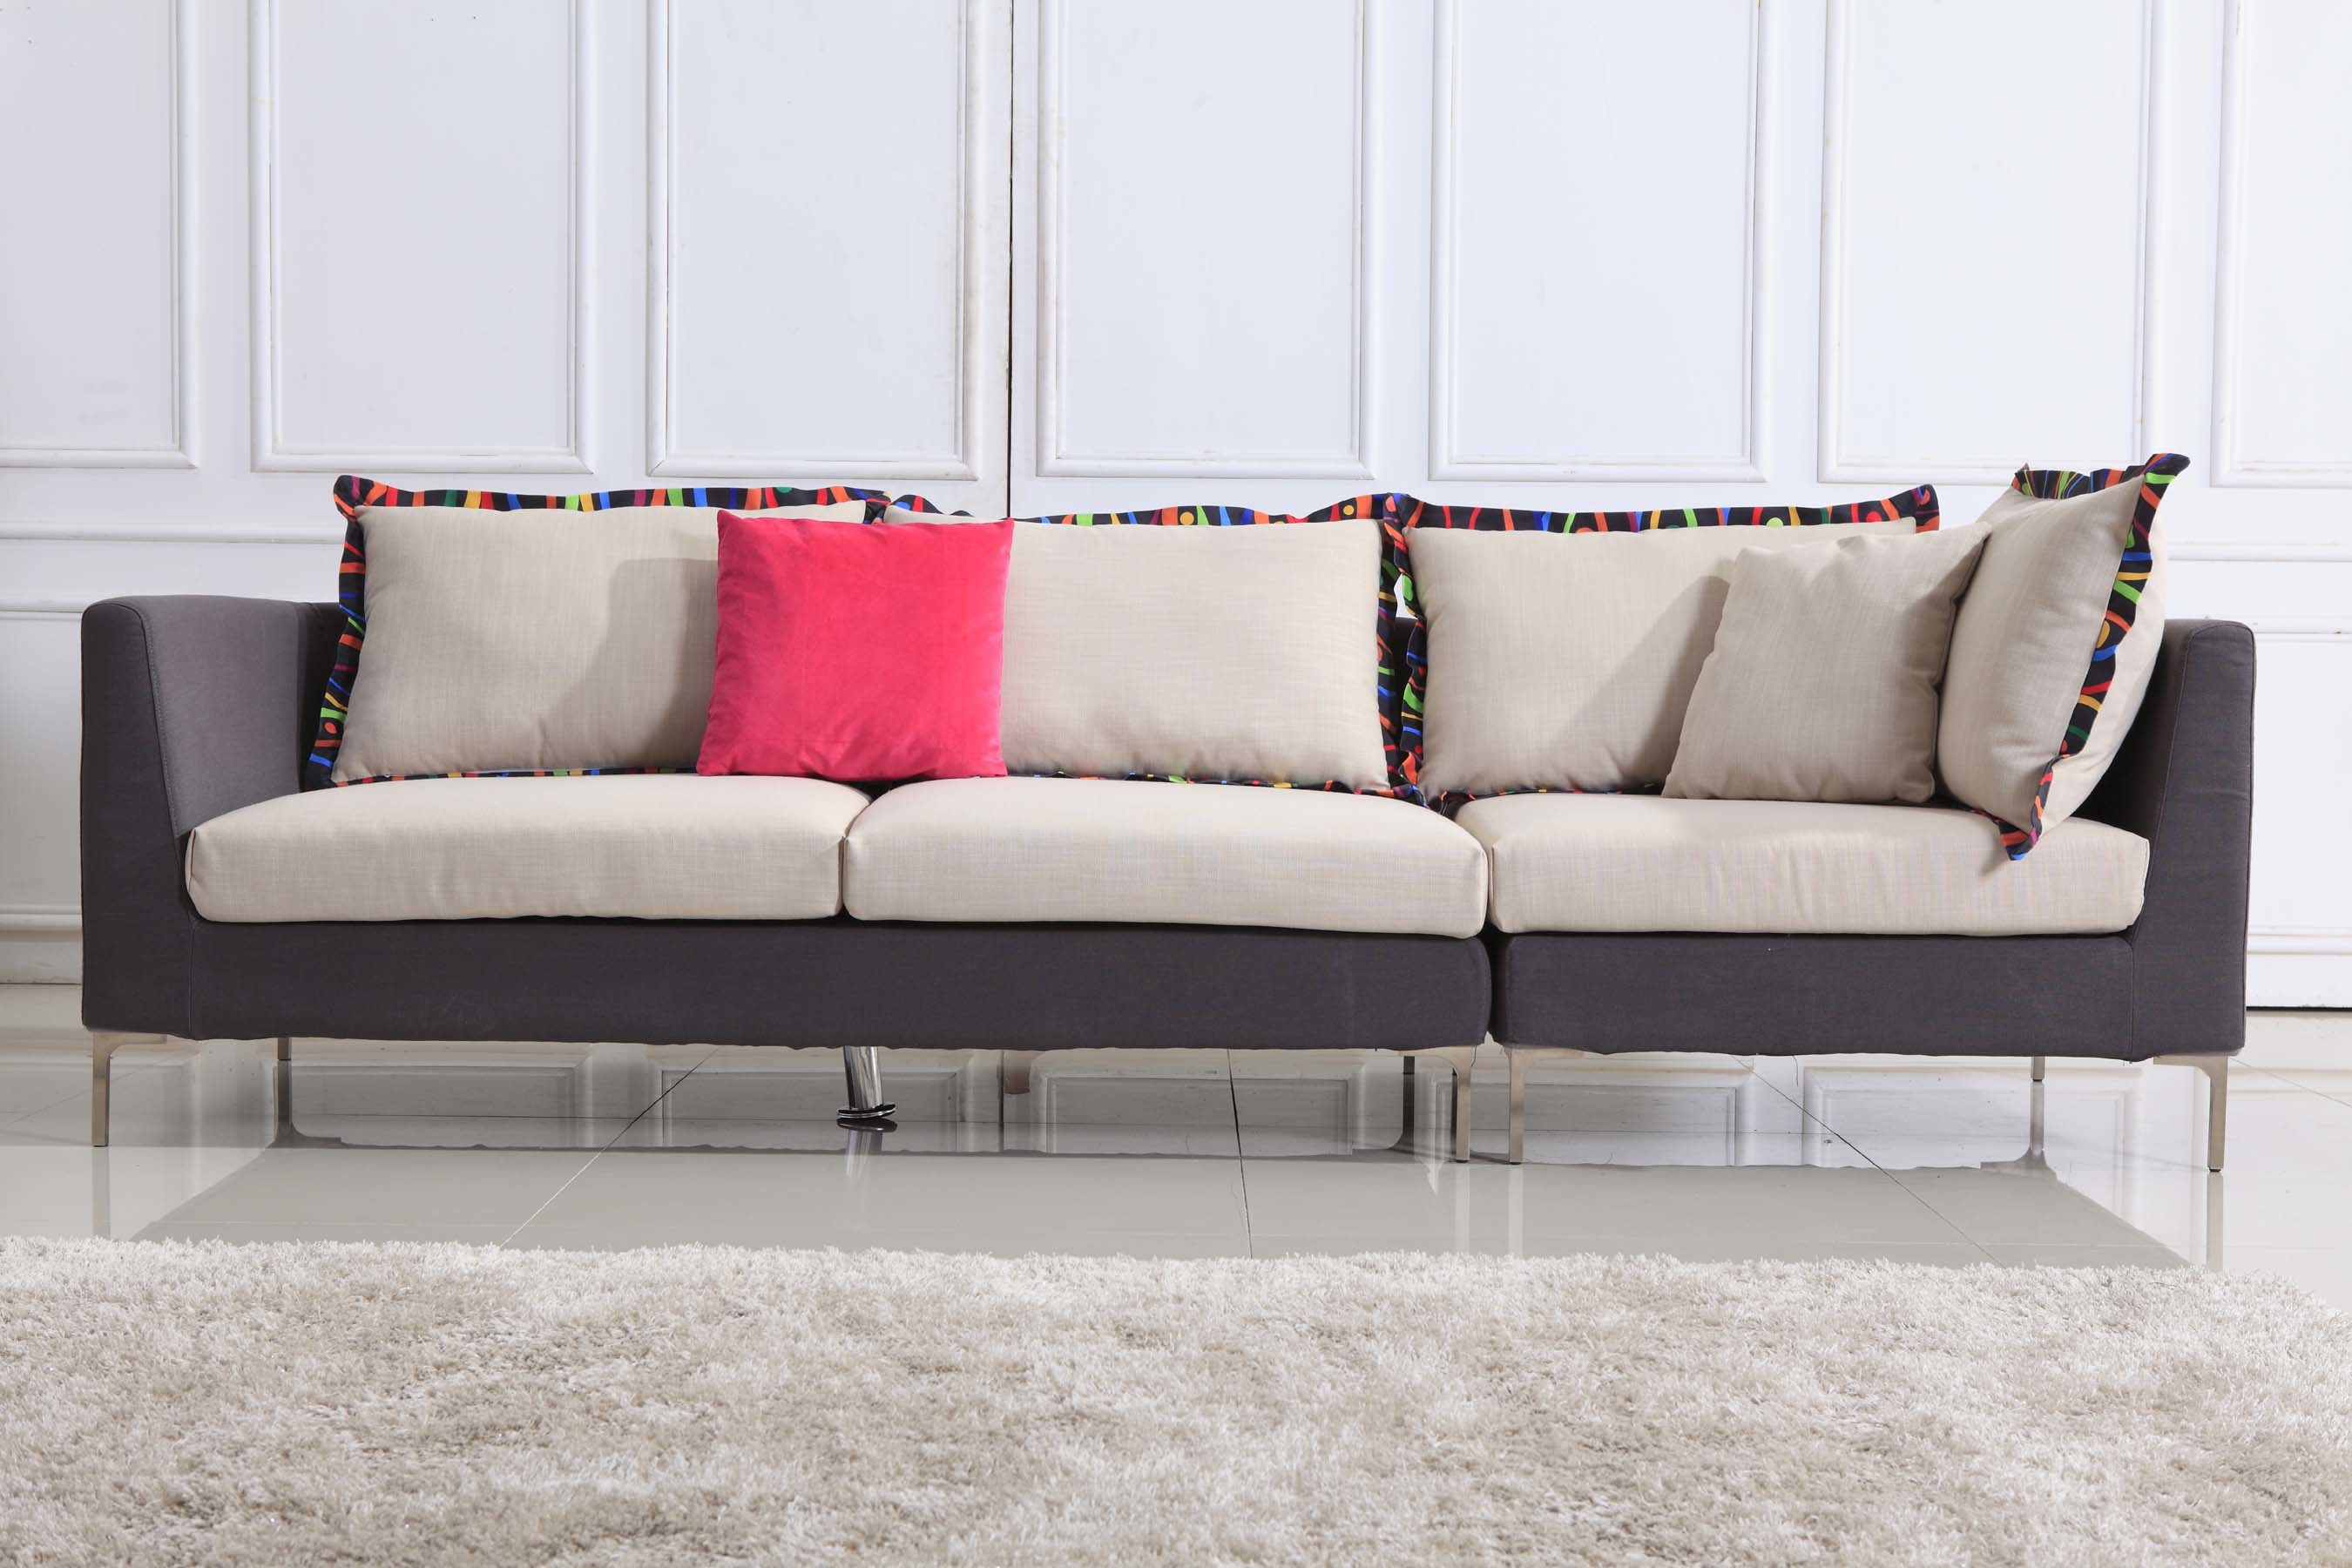 china sofa fabric billig chaiselong chaise lounge leather s8285 photos and pictures